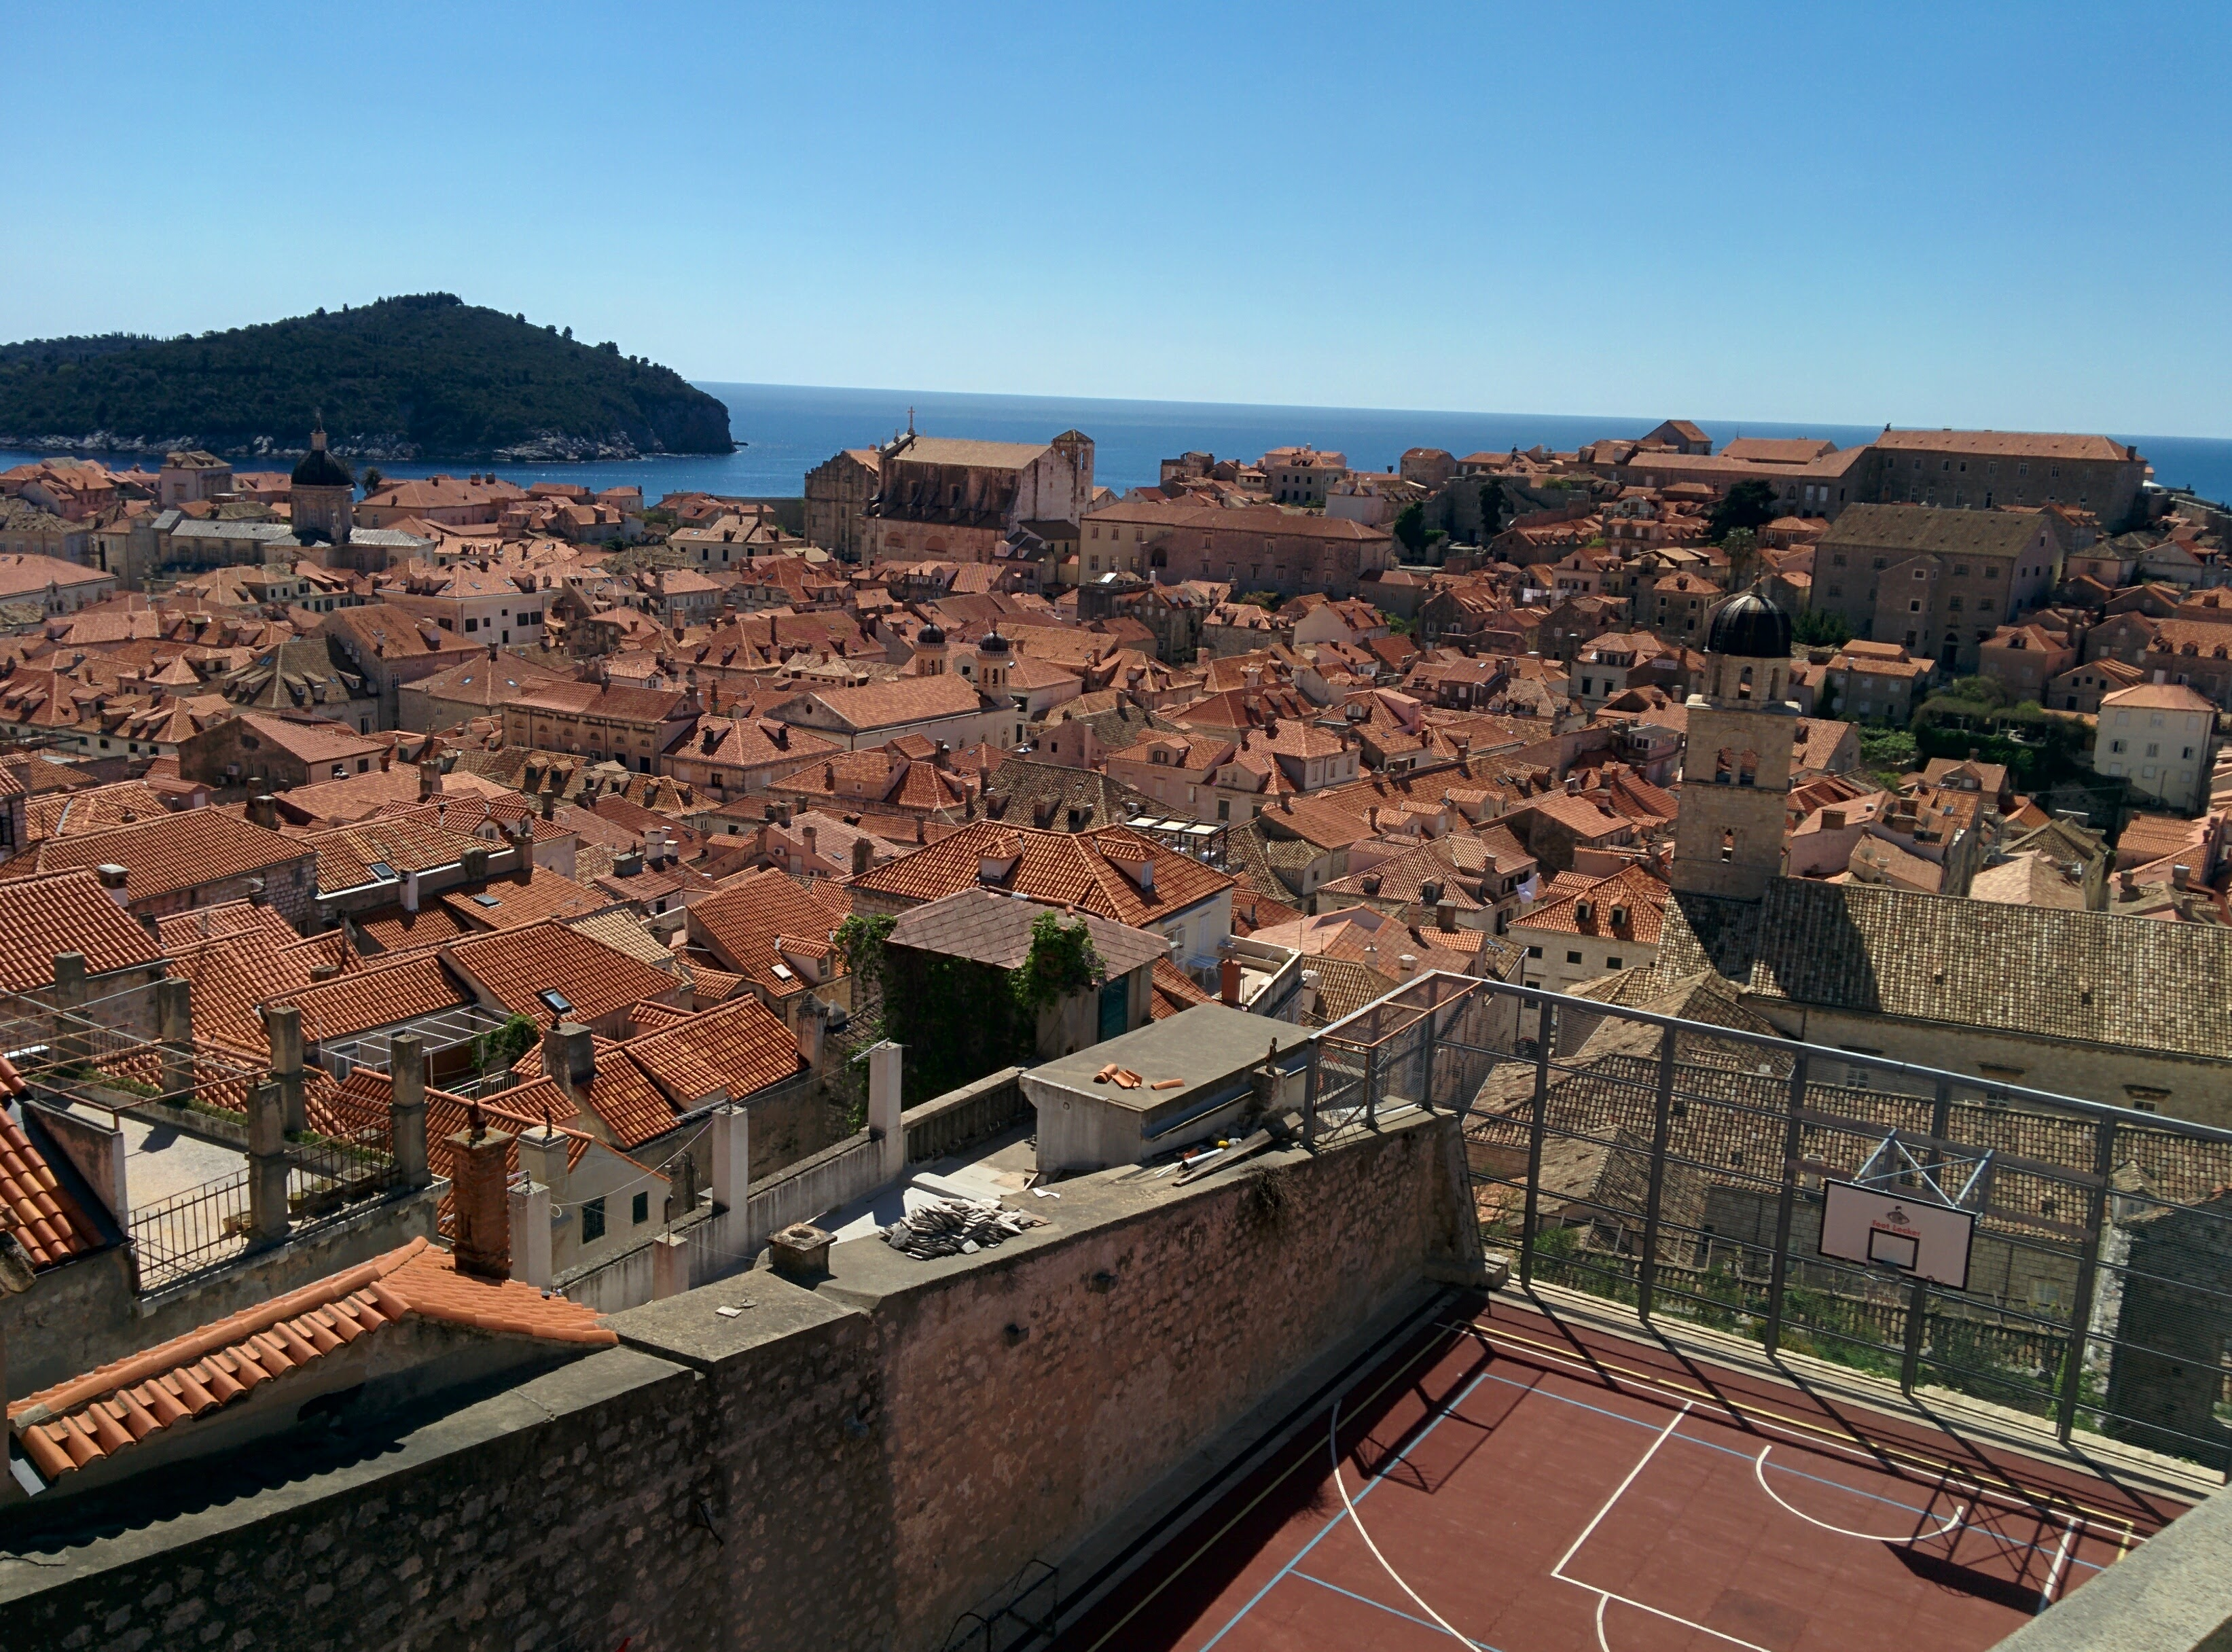 The rooftops of the old city in Dubrovnik.